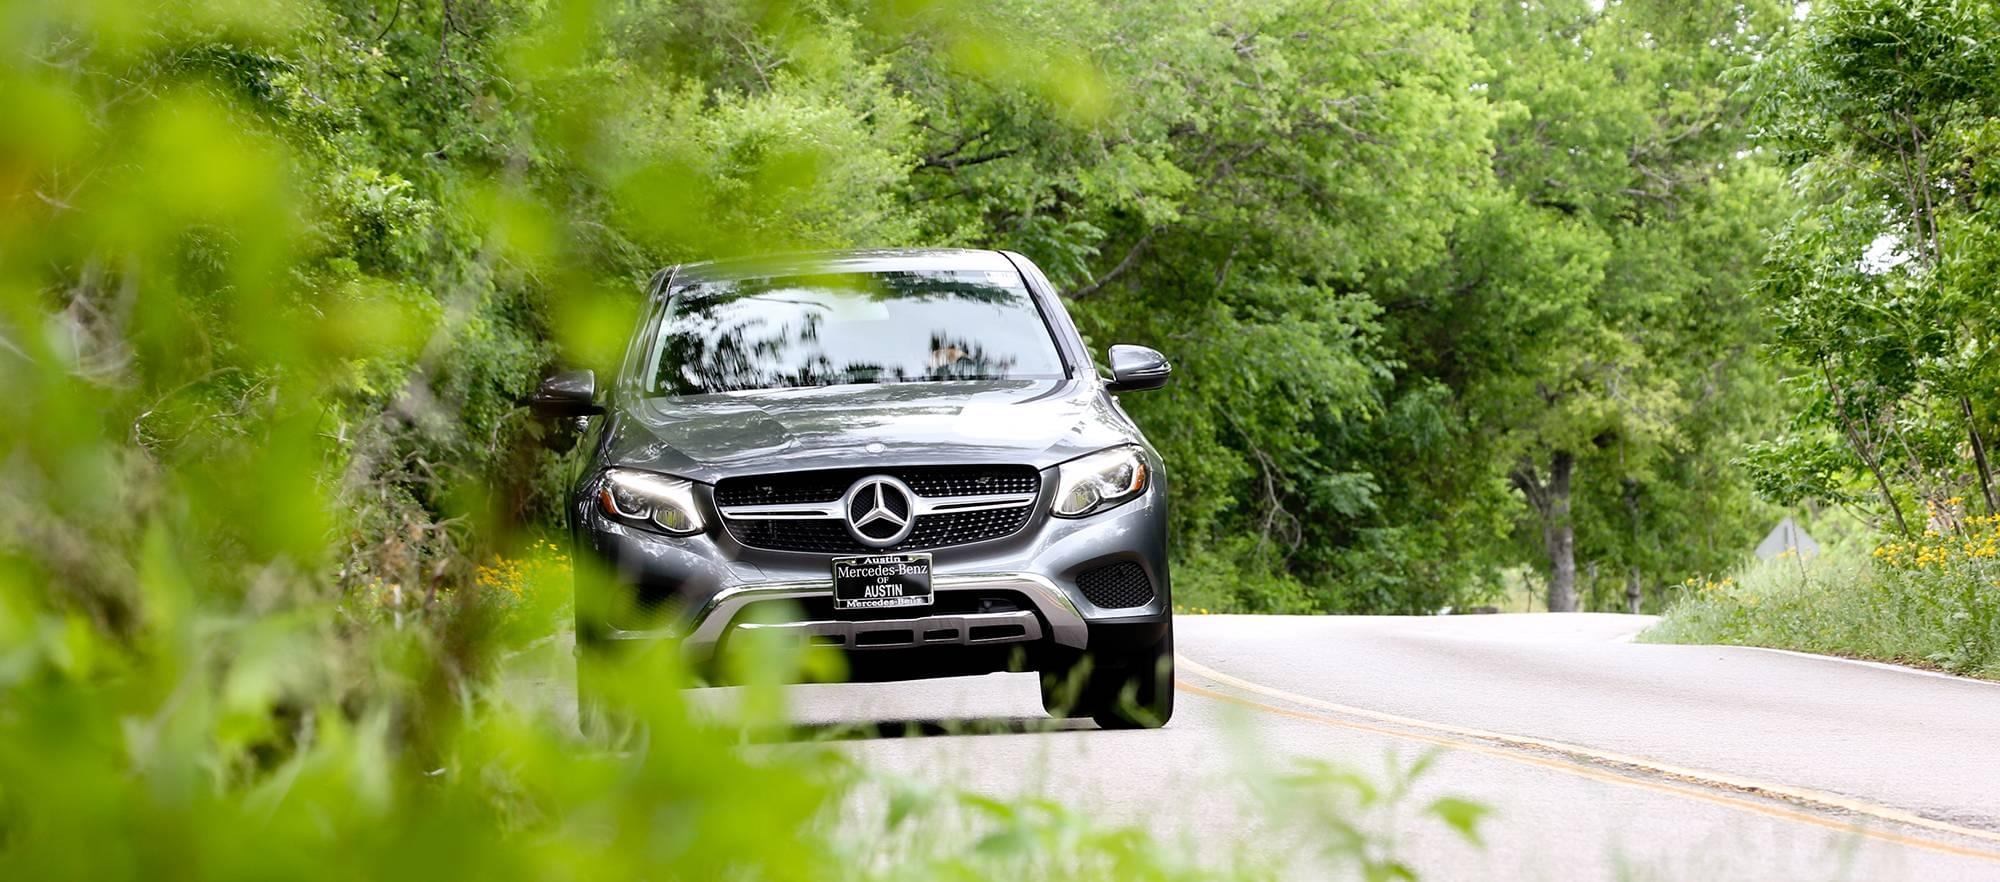 New Mercedes Benz Glc Suv Inventory In Austin Tx Check Engine For Sale